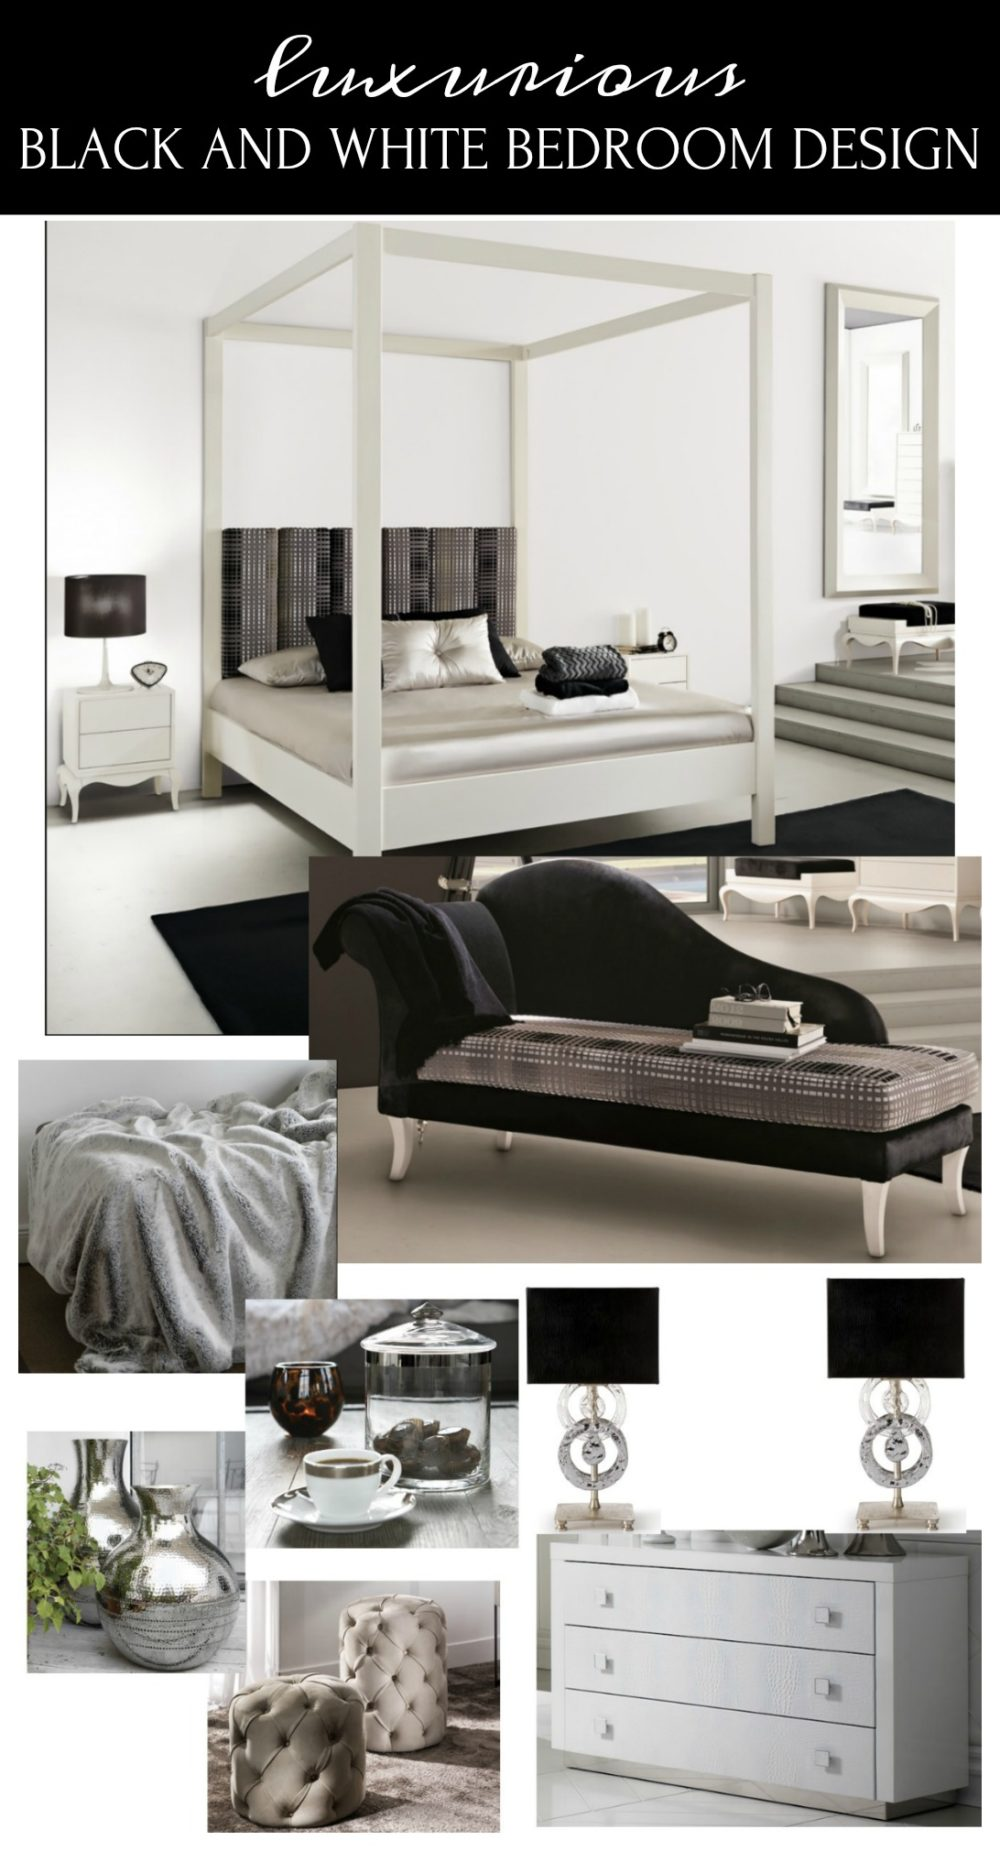 This luxurious black and white bedroom design combines modern lines with traditional pieces.